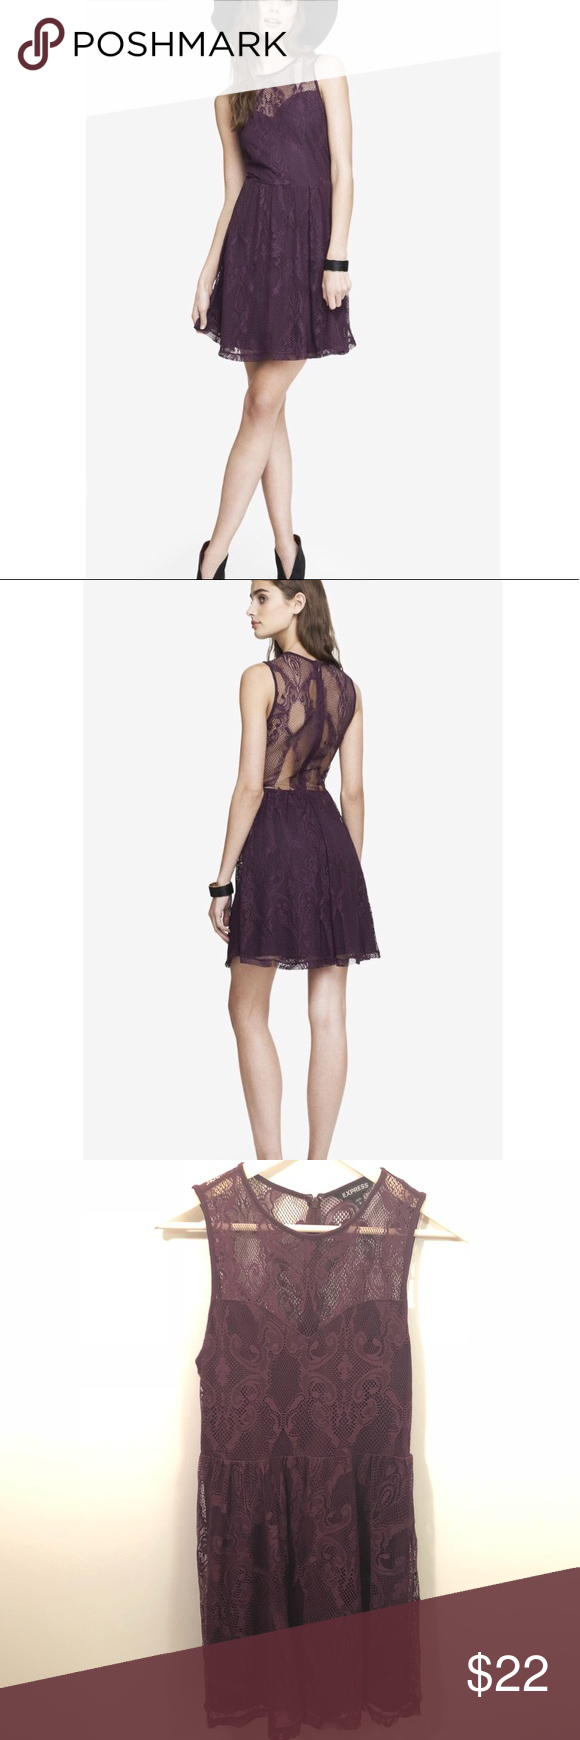 "Express Women s Maroon Purple Lace Skater Dress Express Women s Dark  Berry Maroon Purple Dress Excellent condition Size  small Armpit to armpit   16"" Length ... 18cbcd501"